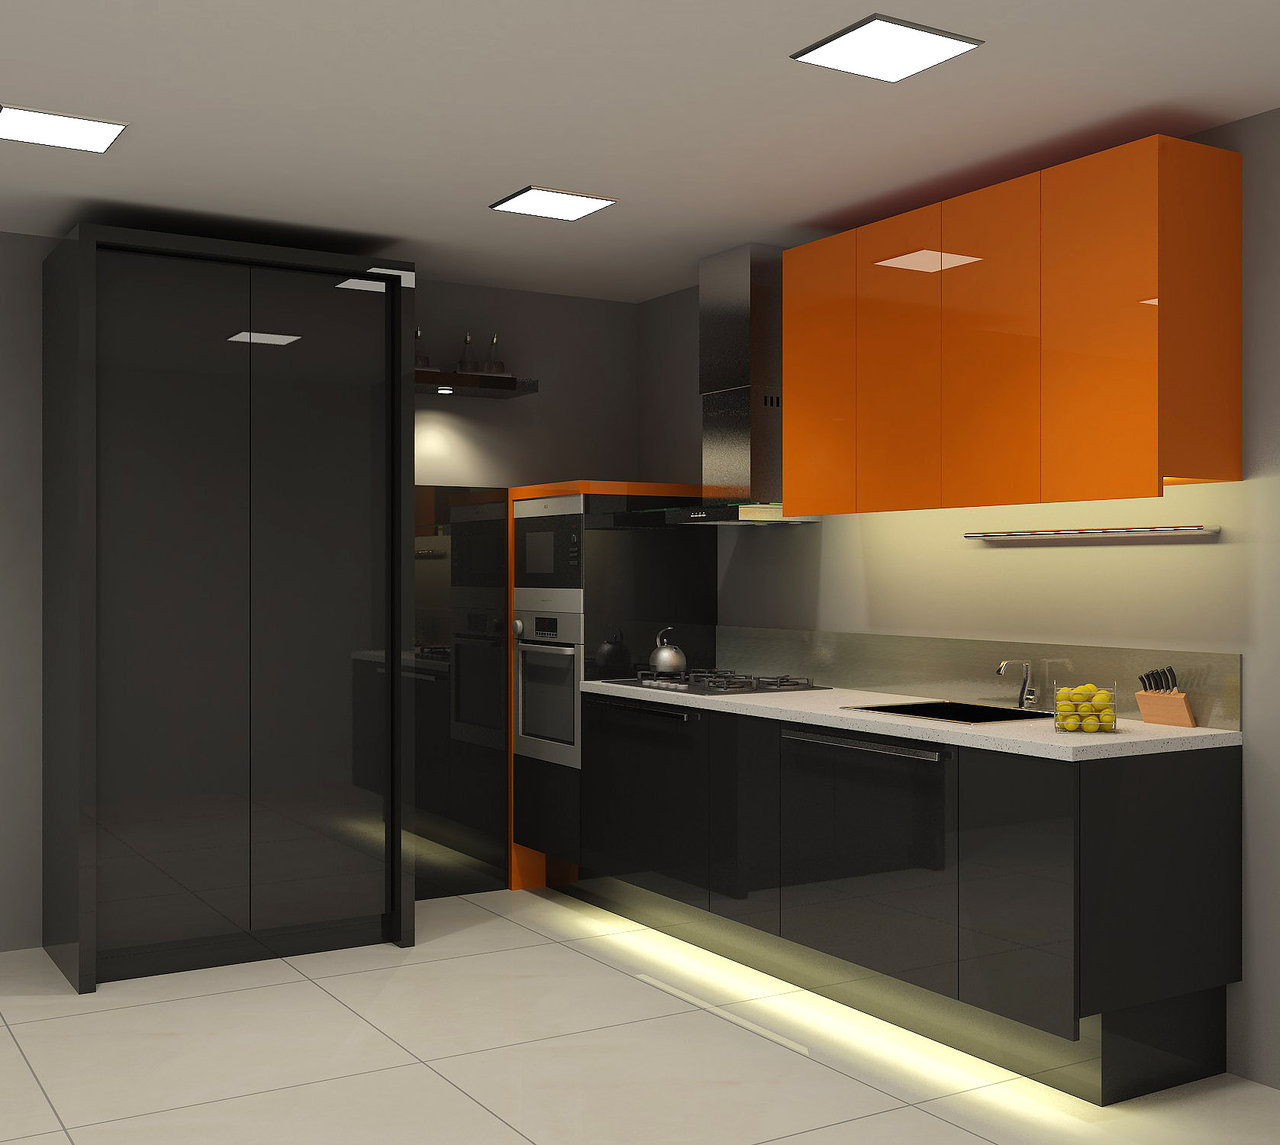 Orange kitchens - Black kitchen cabinets small kitchen ...